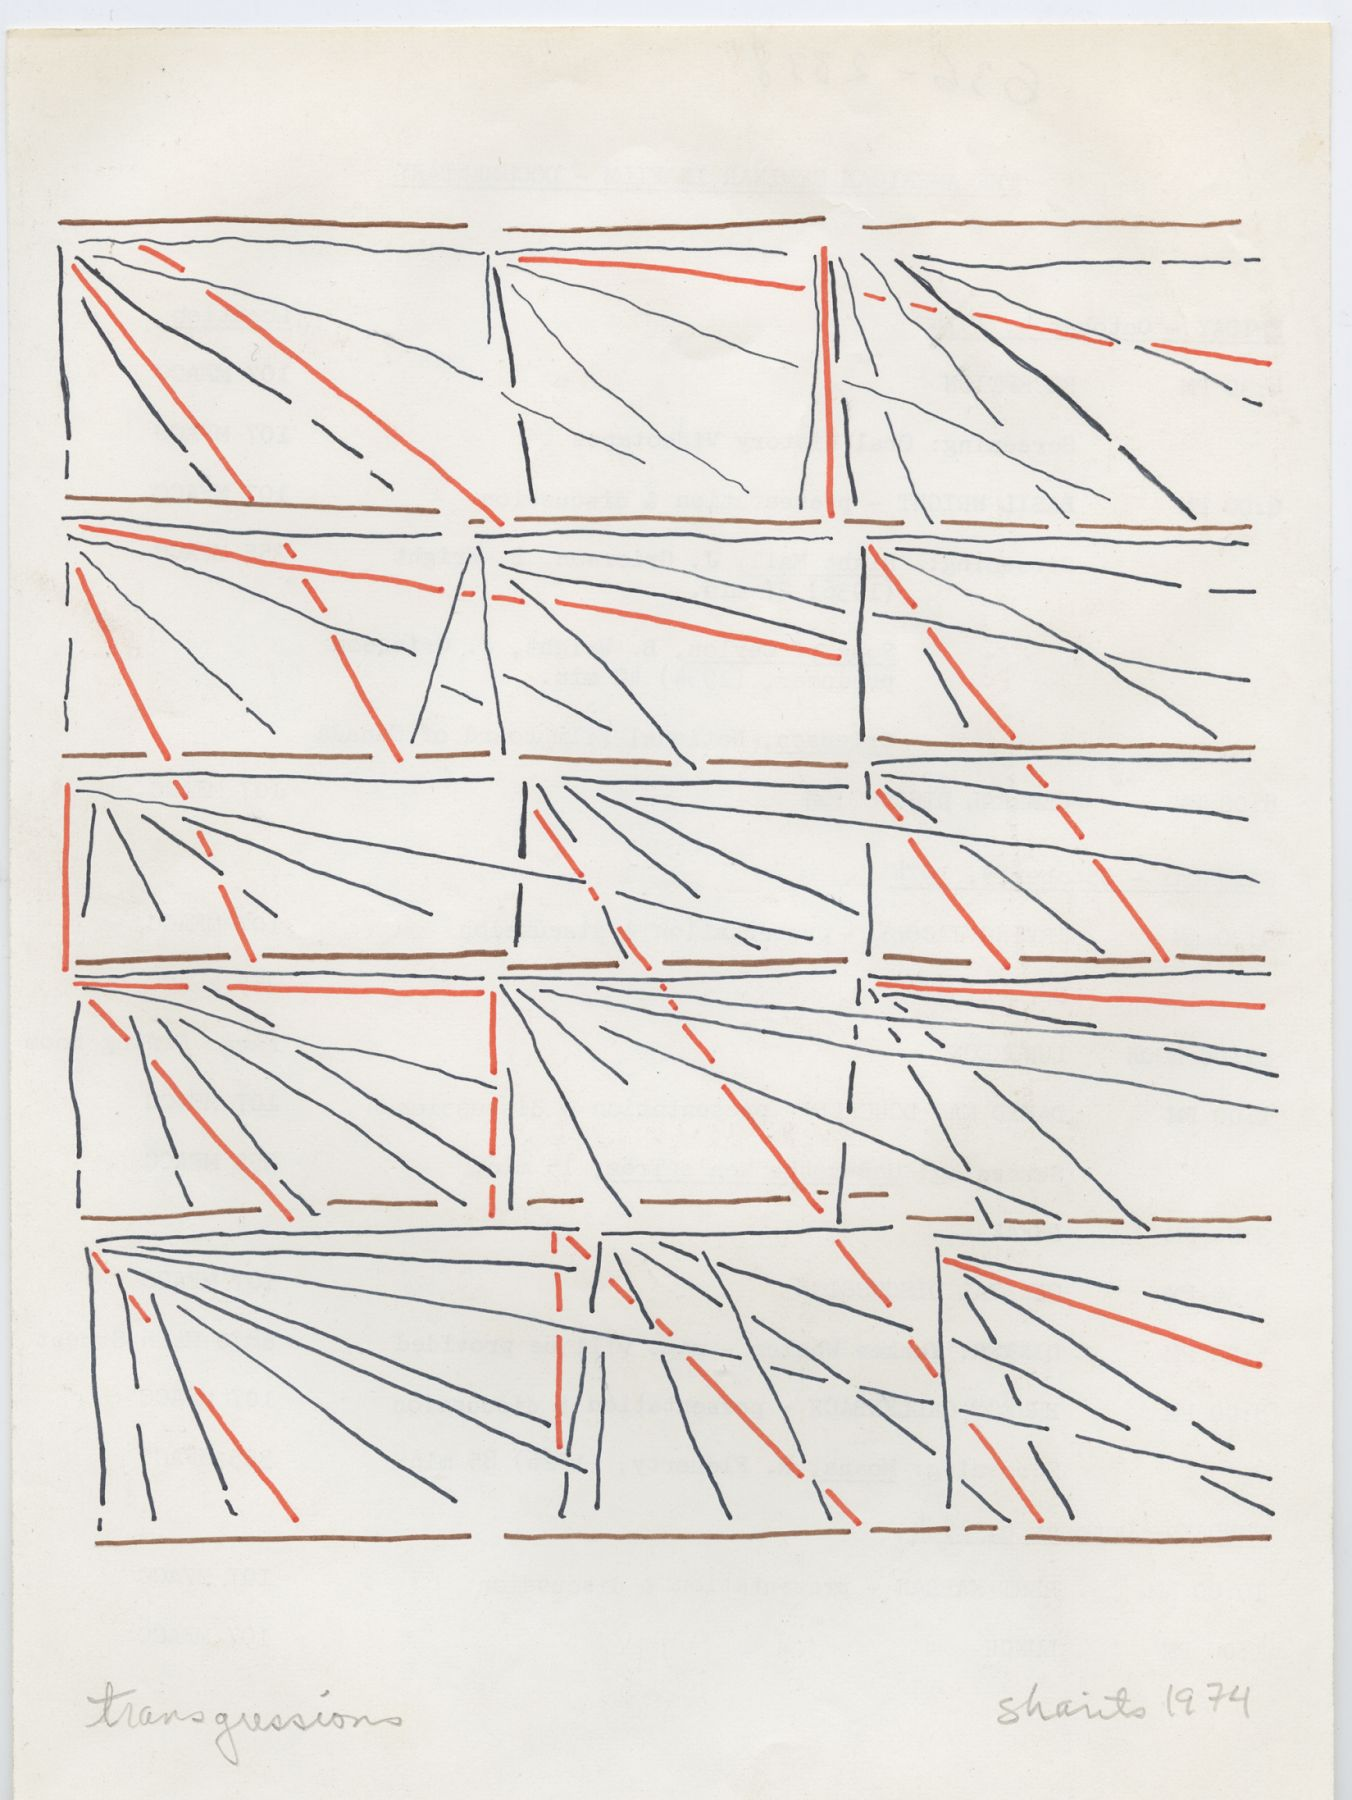 Paul Sharits, Transgressions, 1974, colored feltpen on paper, 10 3/8 x 7 1/2 inches